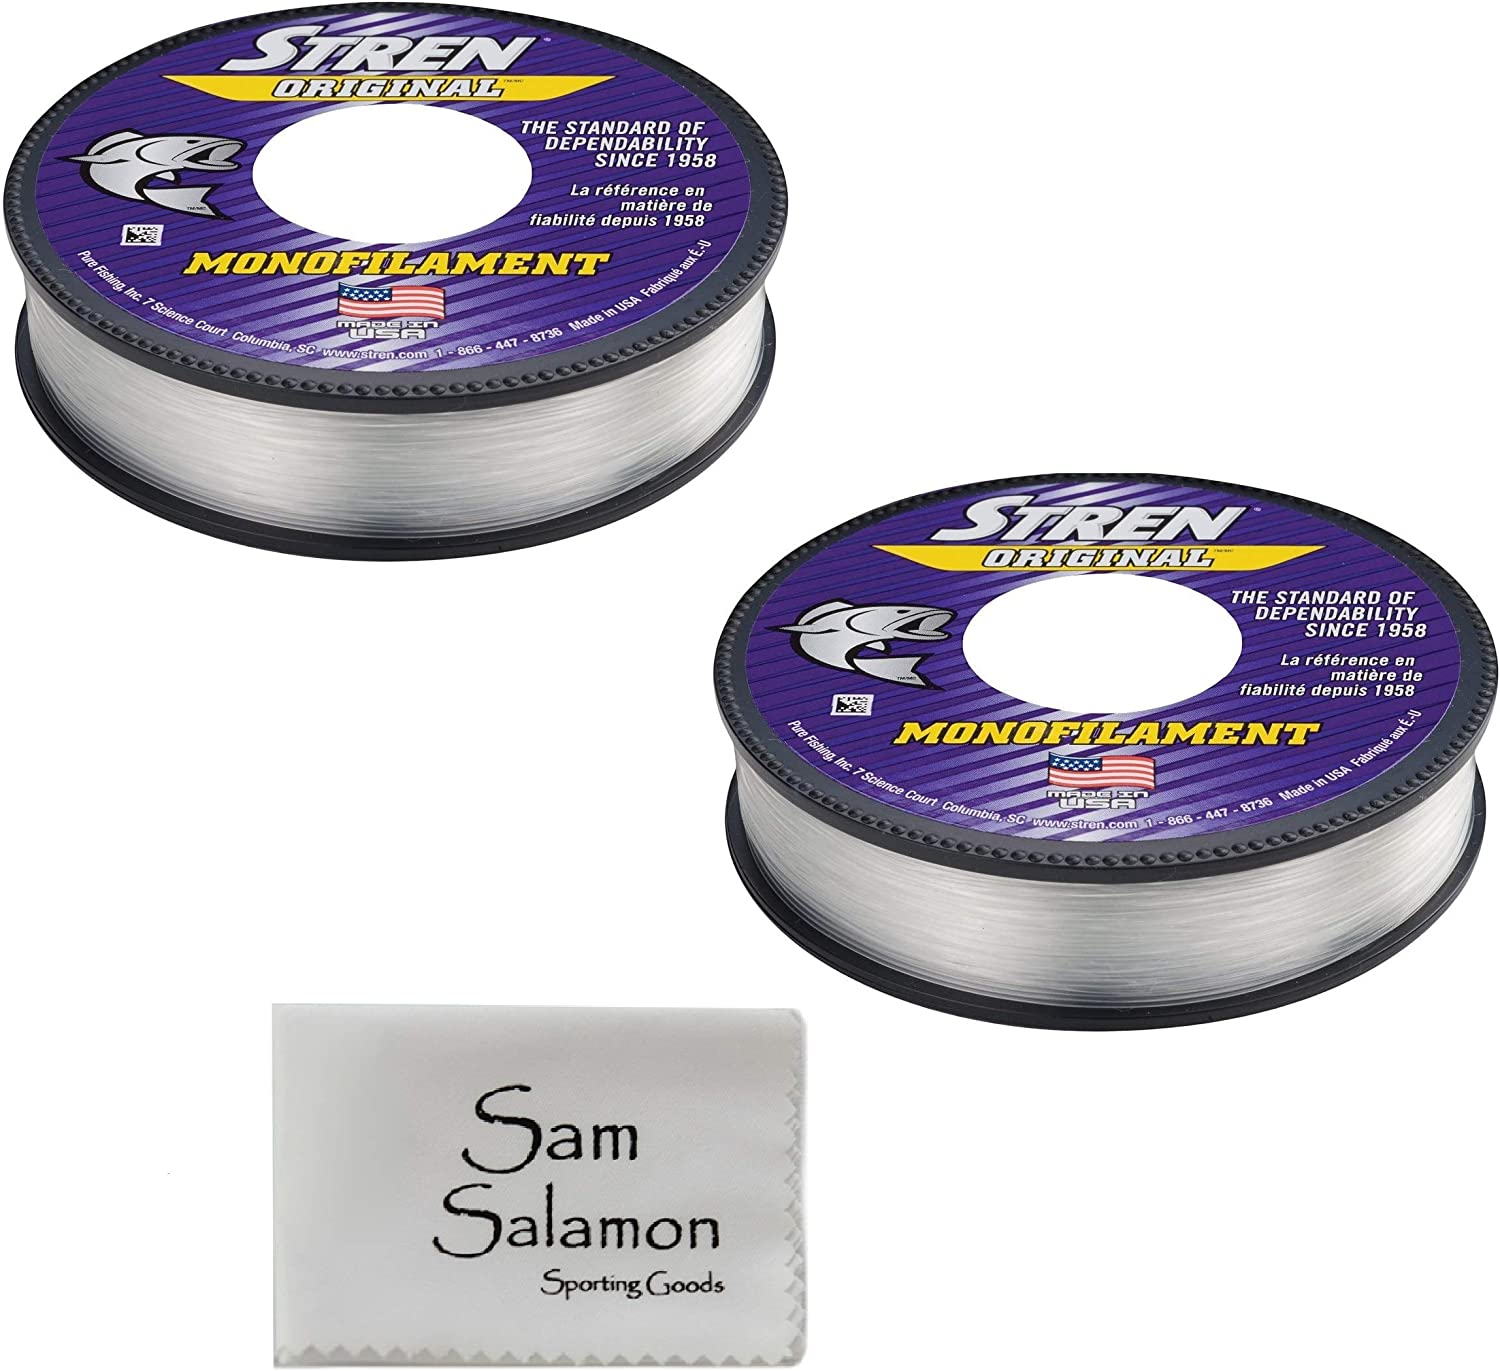 Stren Original Service Spool (2 Pack) w/Micro Sam Salamon Cloth